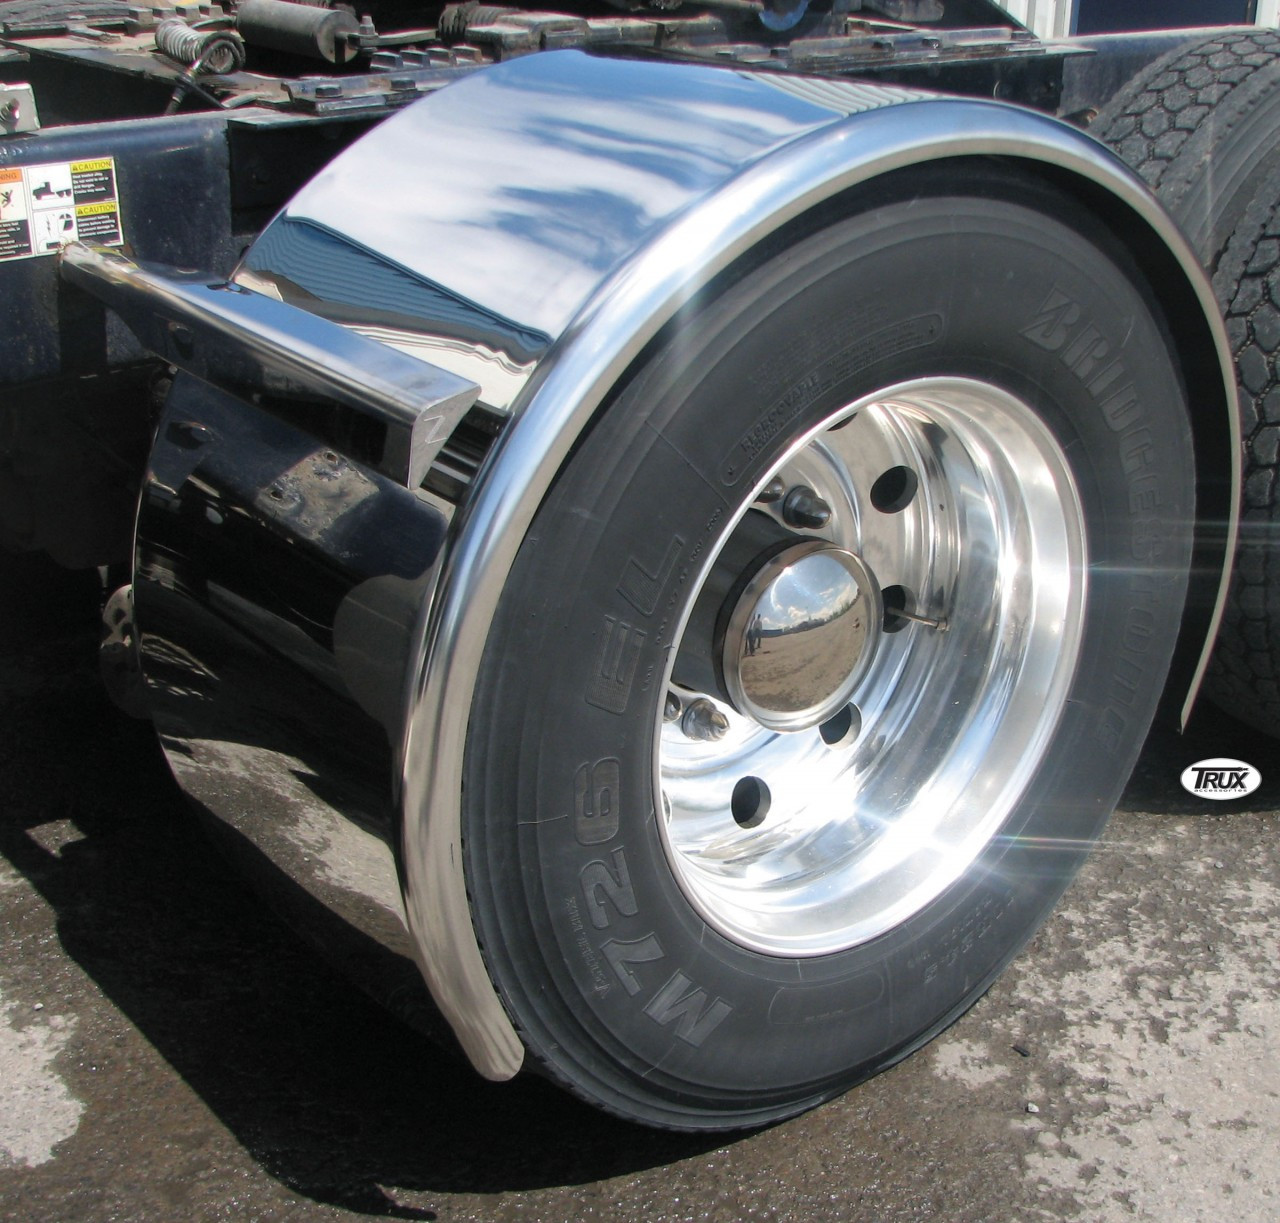 Single Axle Tires : Quot super long stainless steel single axle fenders raney